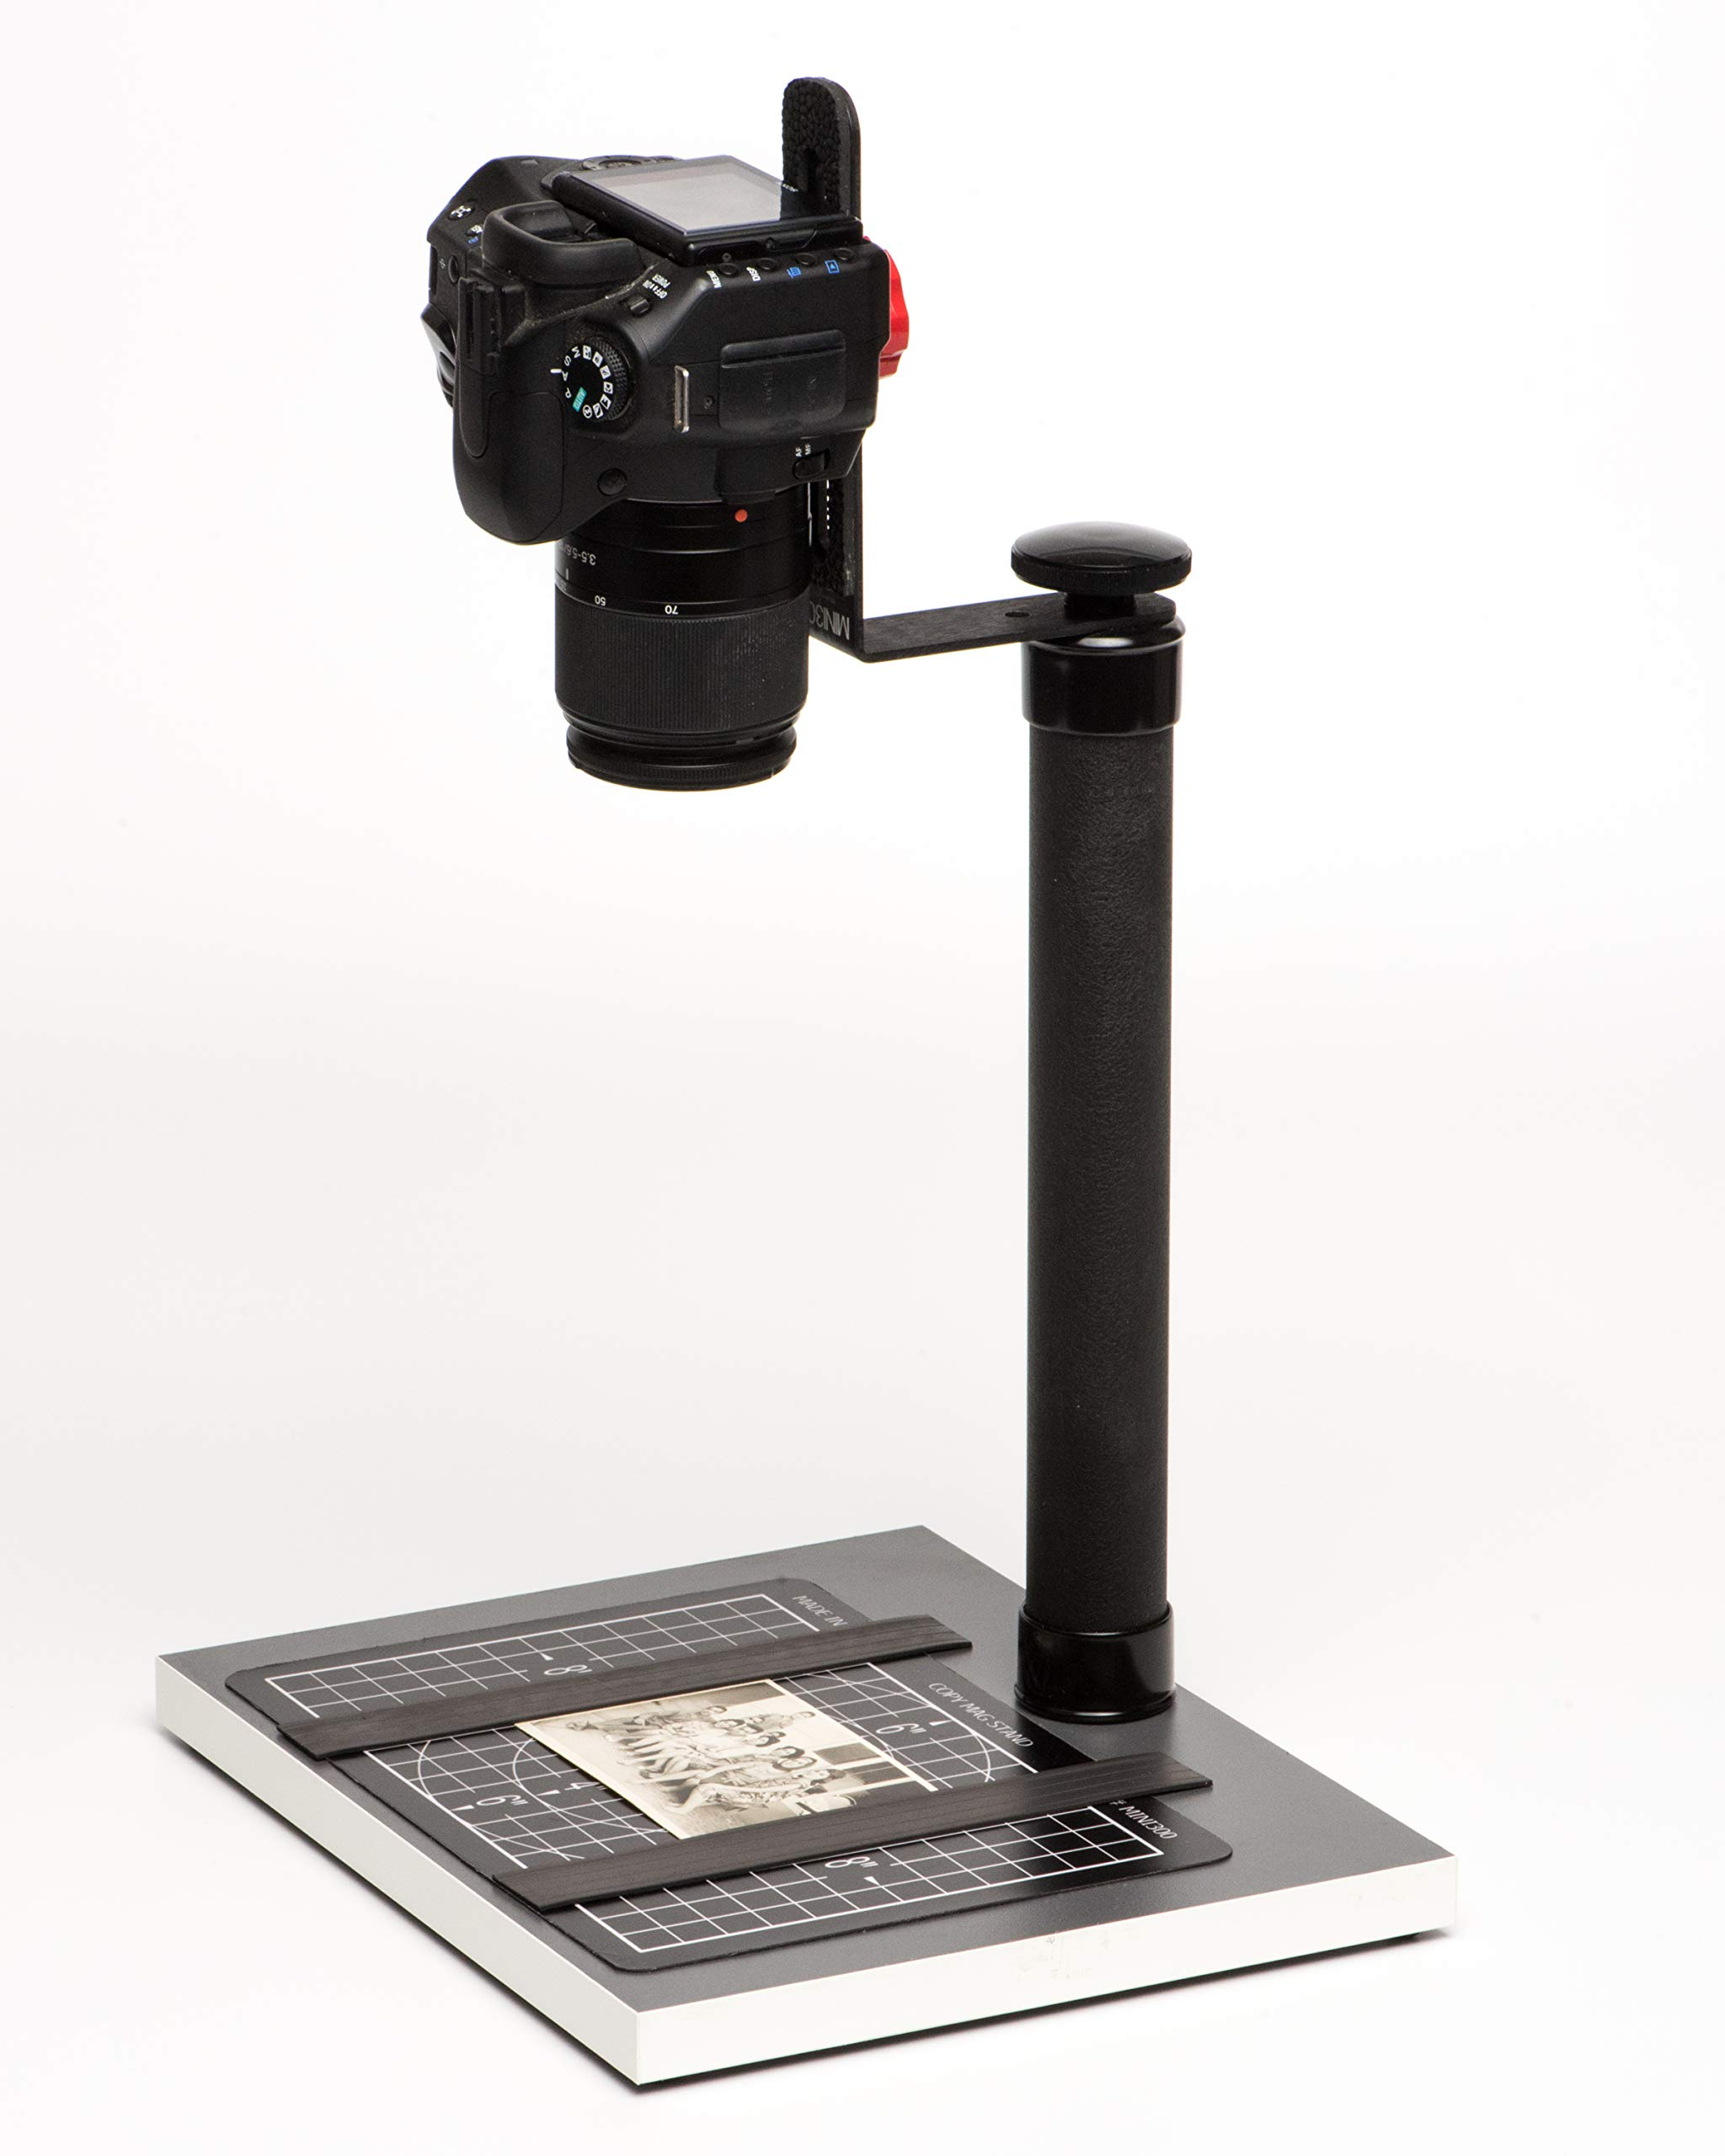 COPY STAND # MINI300, A Compact & Mini Tool for Digitizing Documents, Photos, or Small Objects with Today's SLR Super Megapixel Cameras by Stand Company (Image #5)